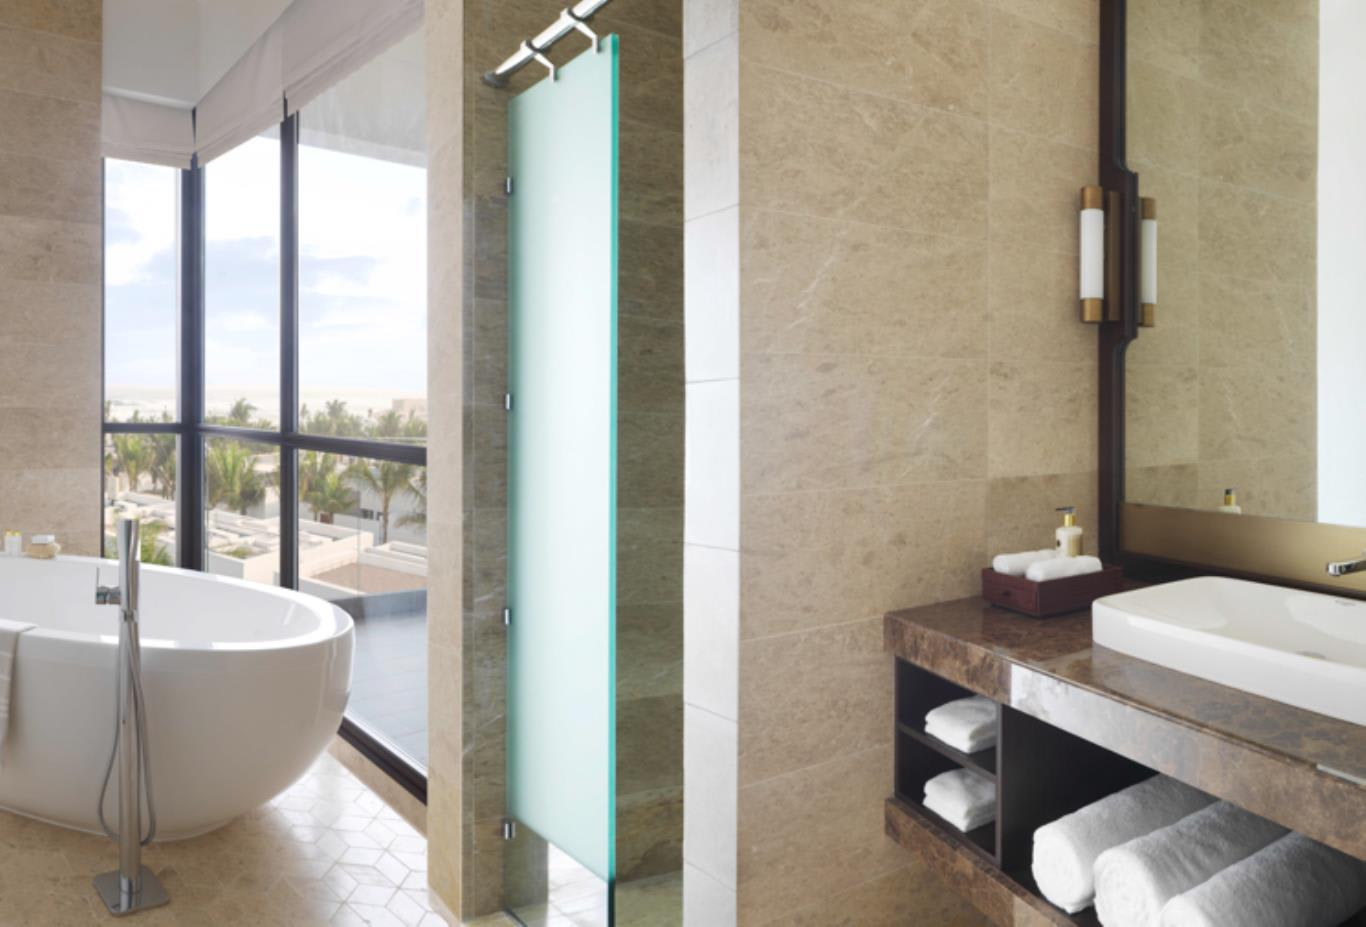 Premier Sea View Bathroom